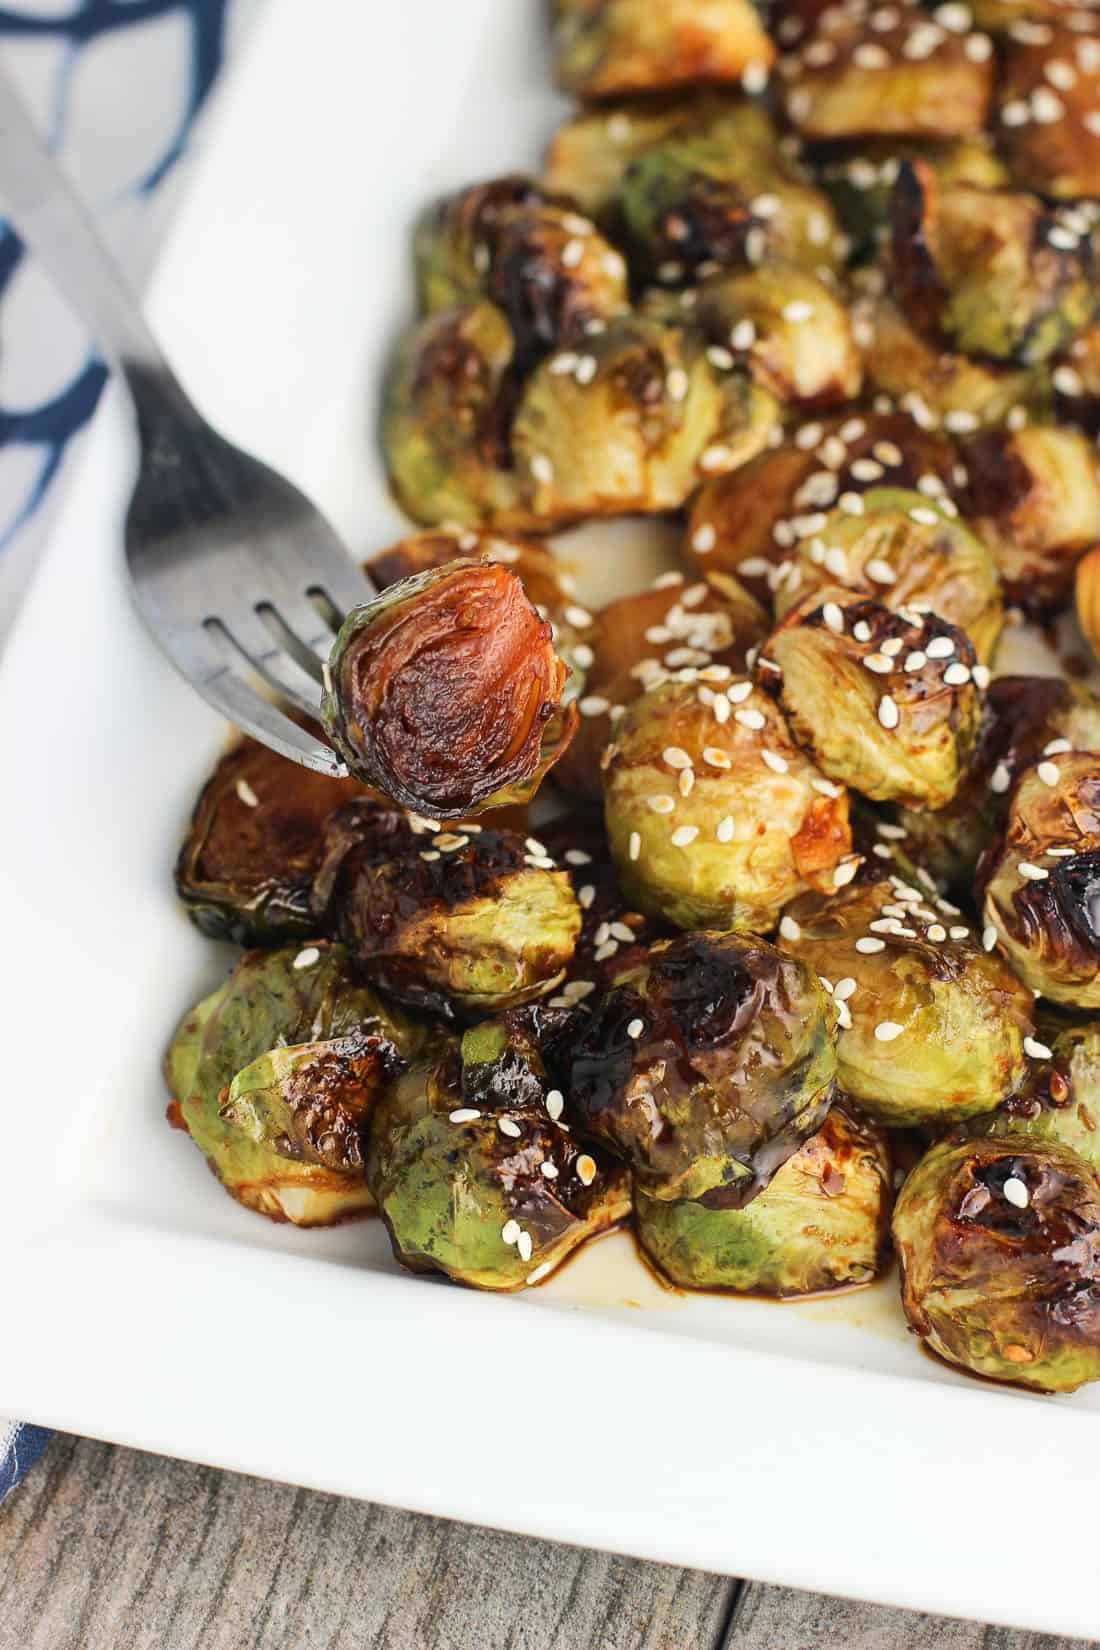 A fork spearing a Brussels sprouts half from the tray showing the deeply roasted surface